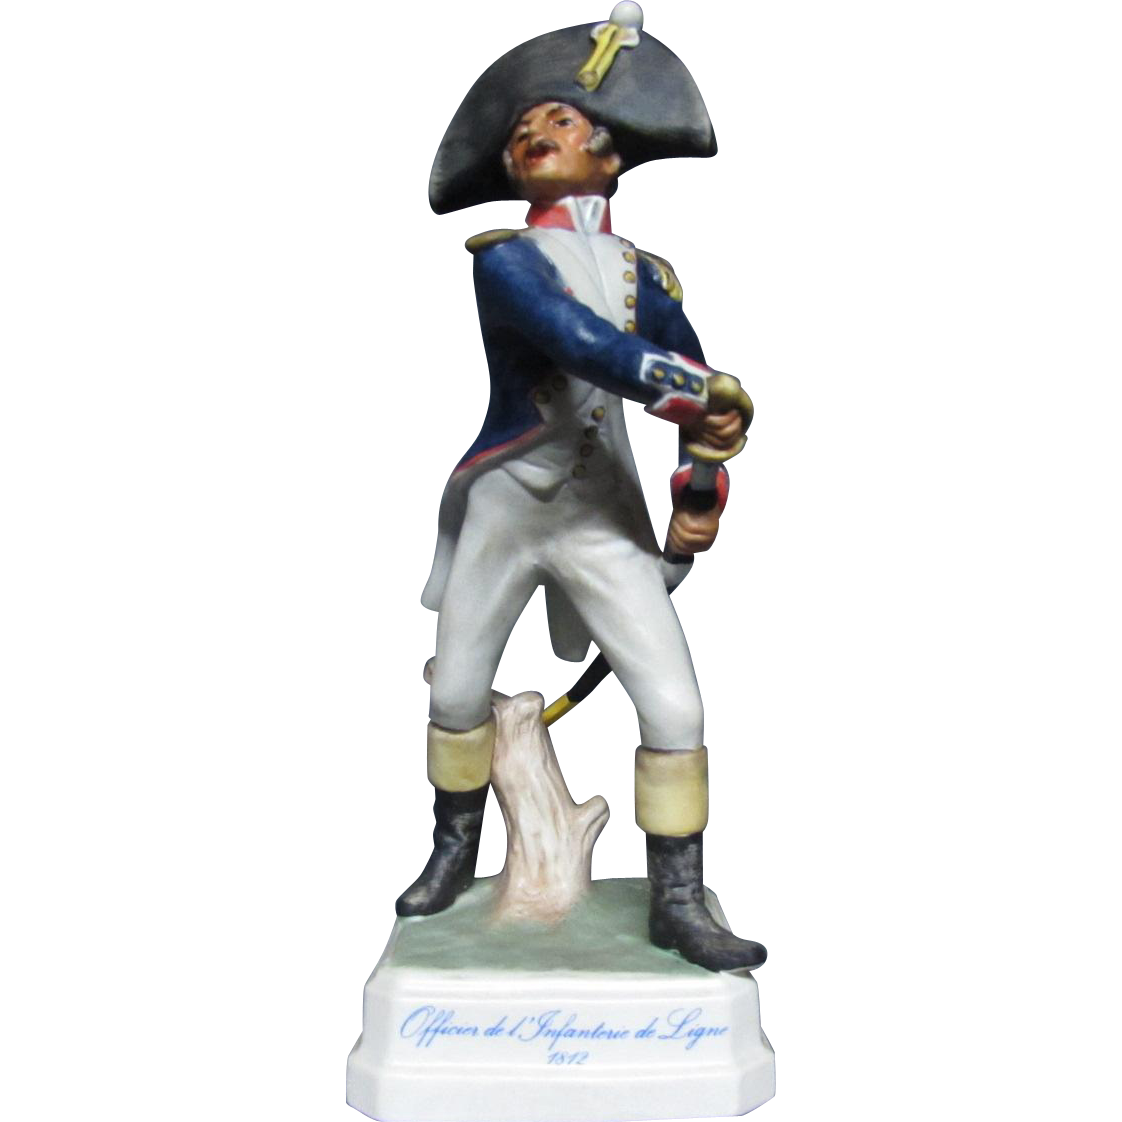 Goebel Napoleonic Military Figurine Officer of the Line 1812